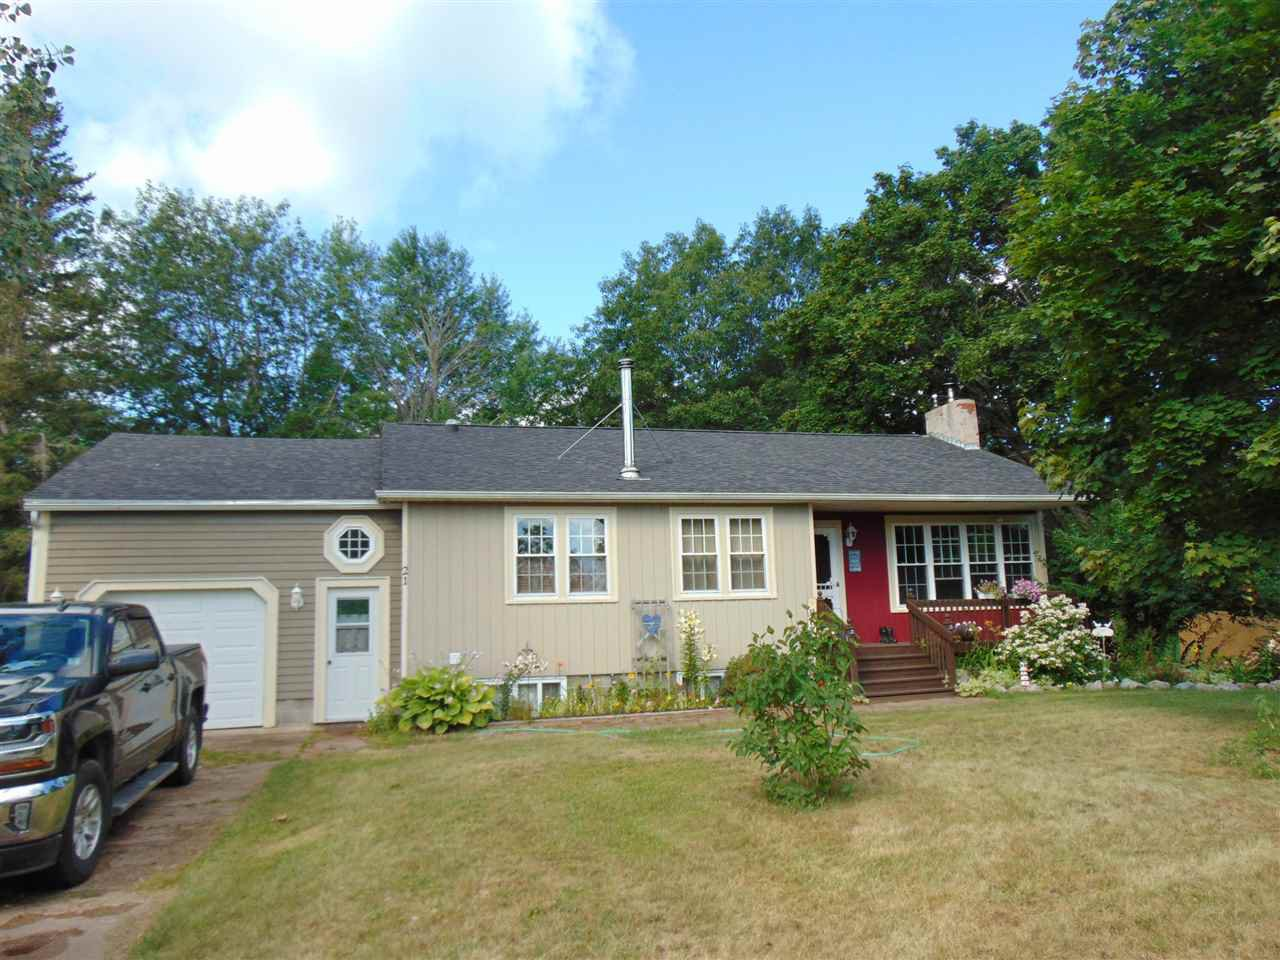 Main Photo: 21 Brockville Street in East Kingston: 404-Kings County Residential for sale (Annapolis Valley)  : MLS®# 202015777